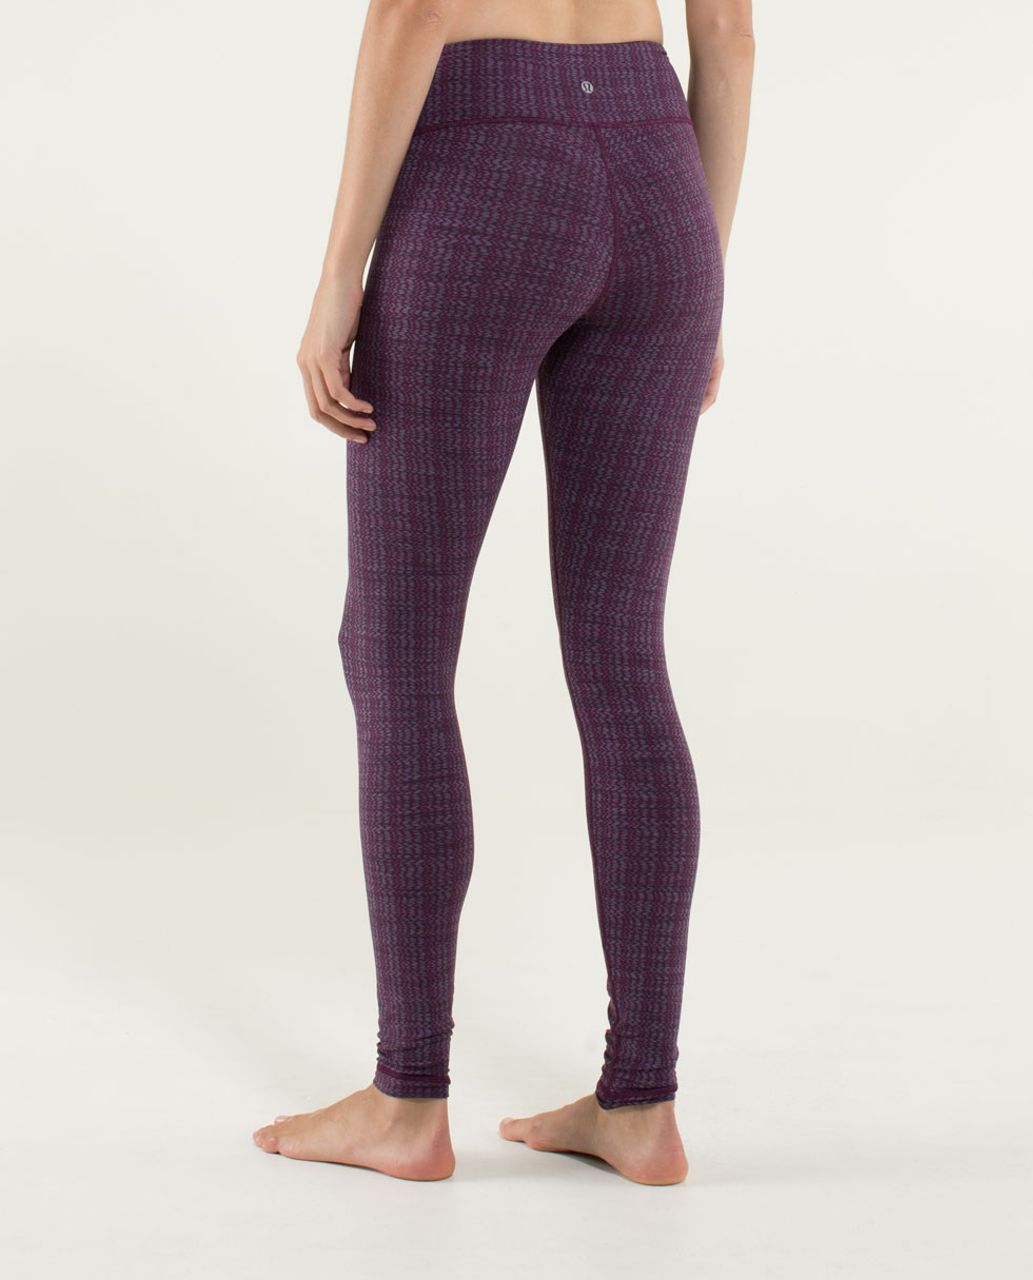 Lululemon Wunder Under Pant *Textured - Ziggy Wee September Plum